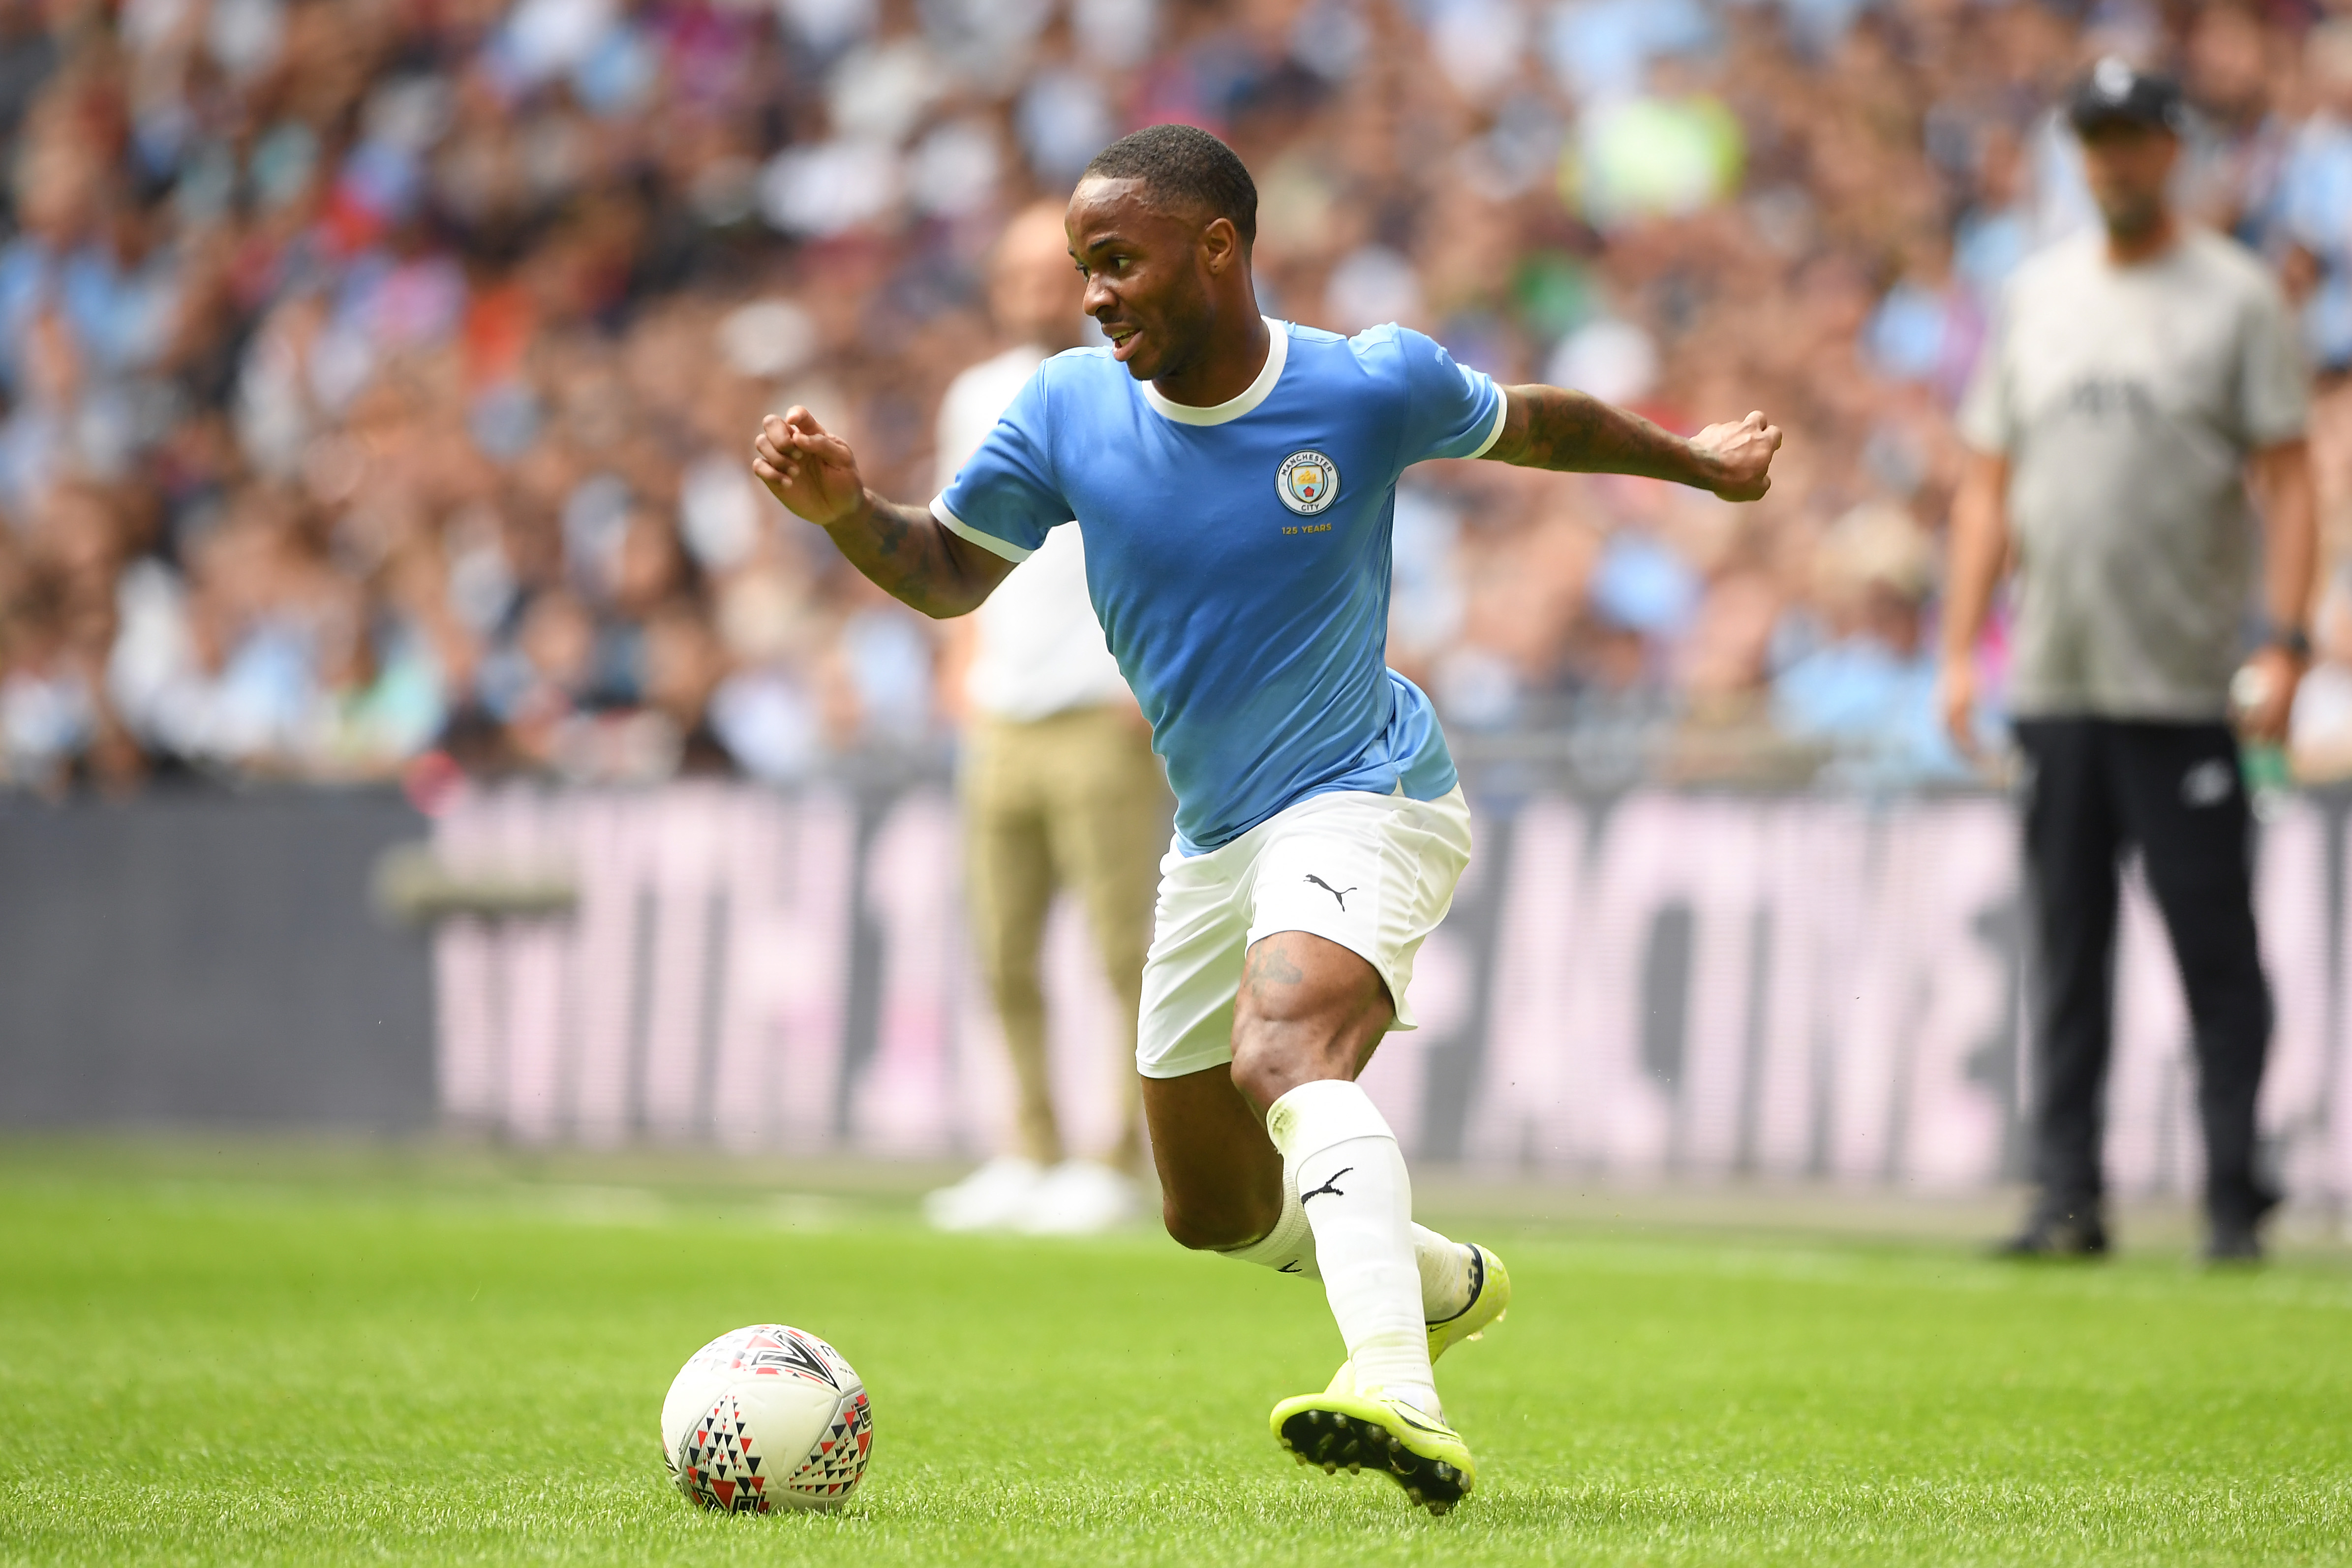 Raheem Sterling Considers Deal That Will Make Him The Face Of Air Jordan's New Soccer Fashion Line